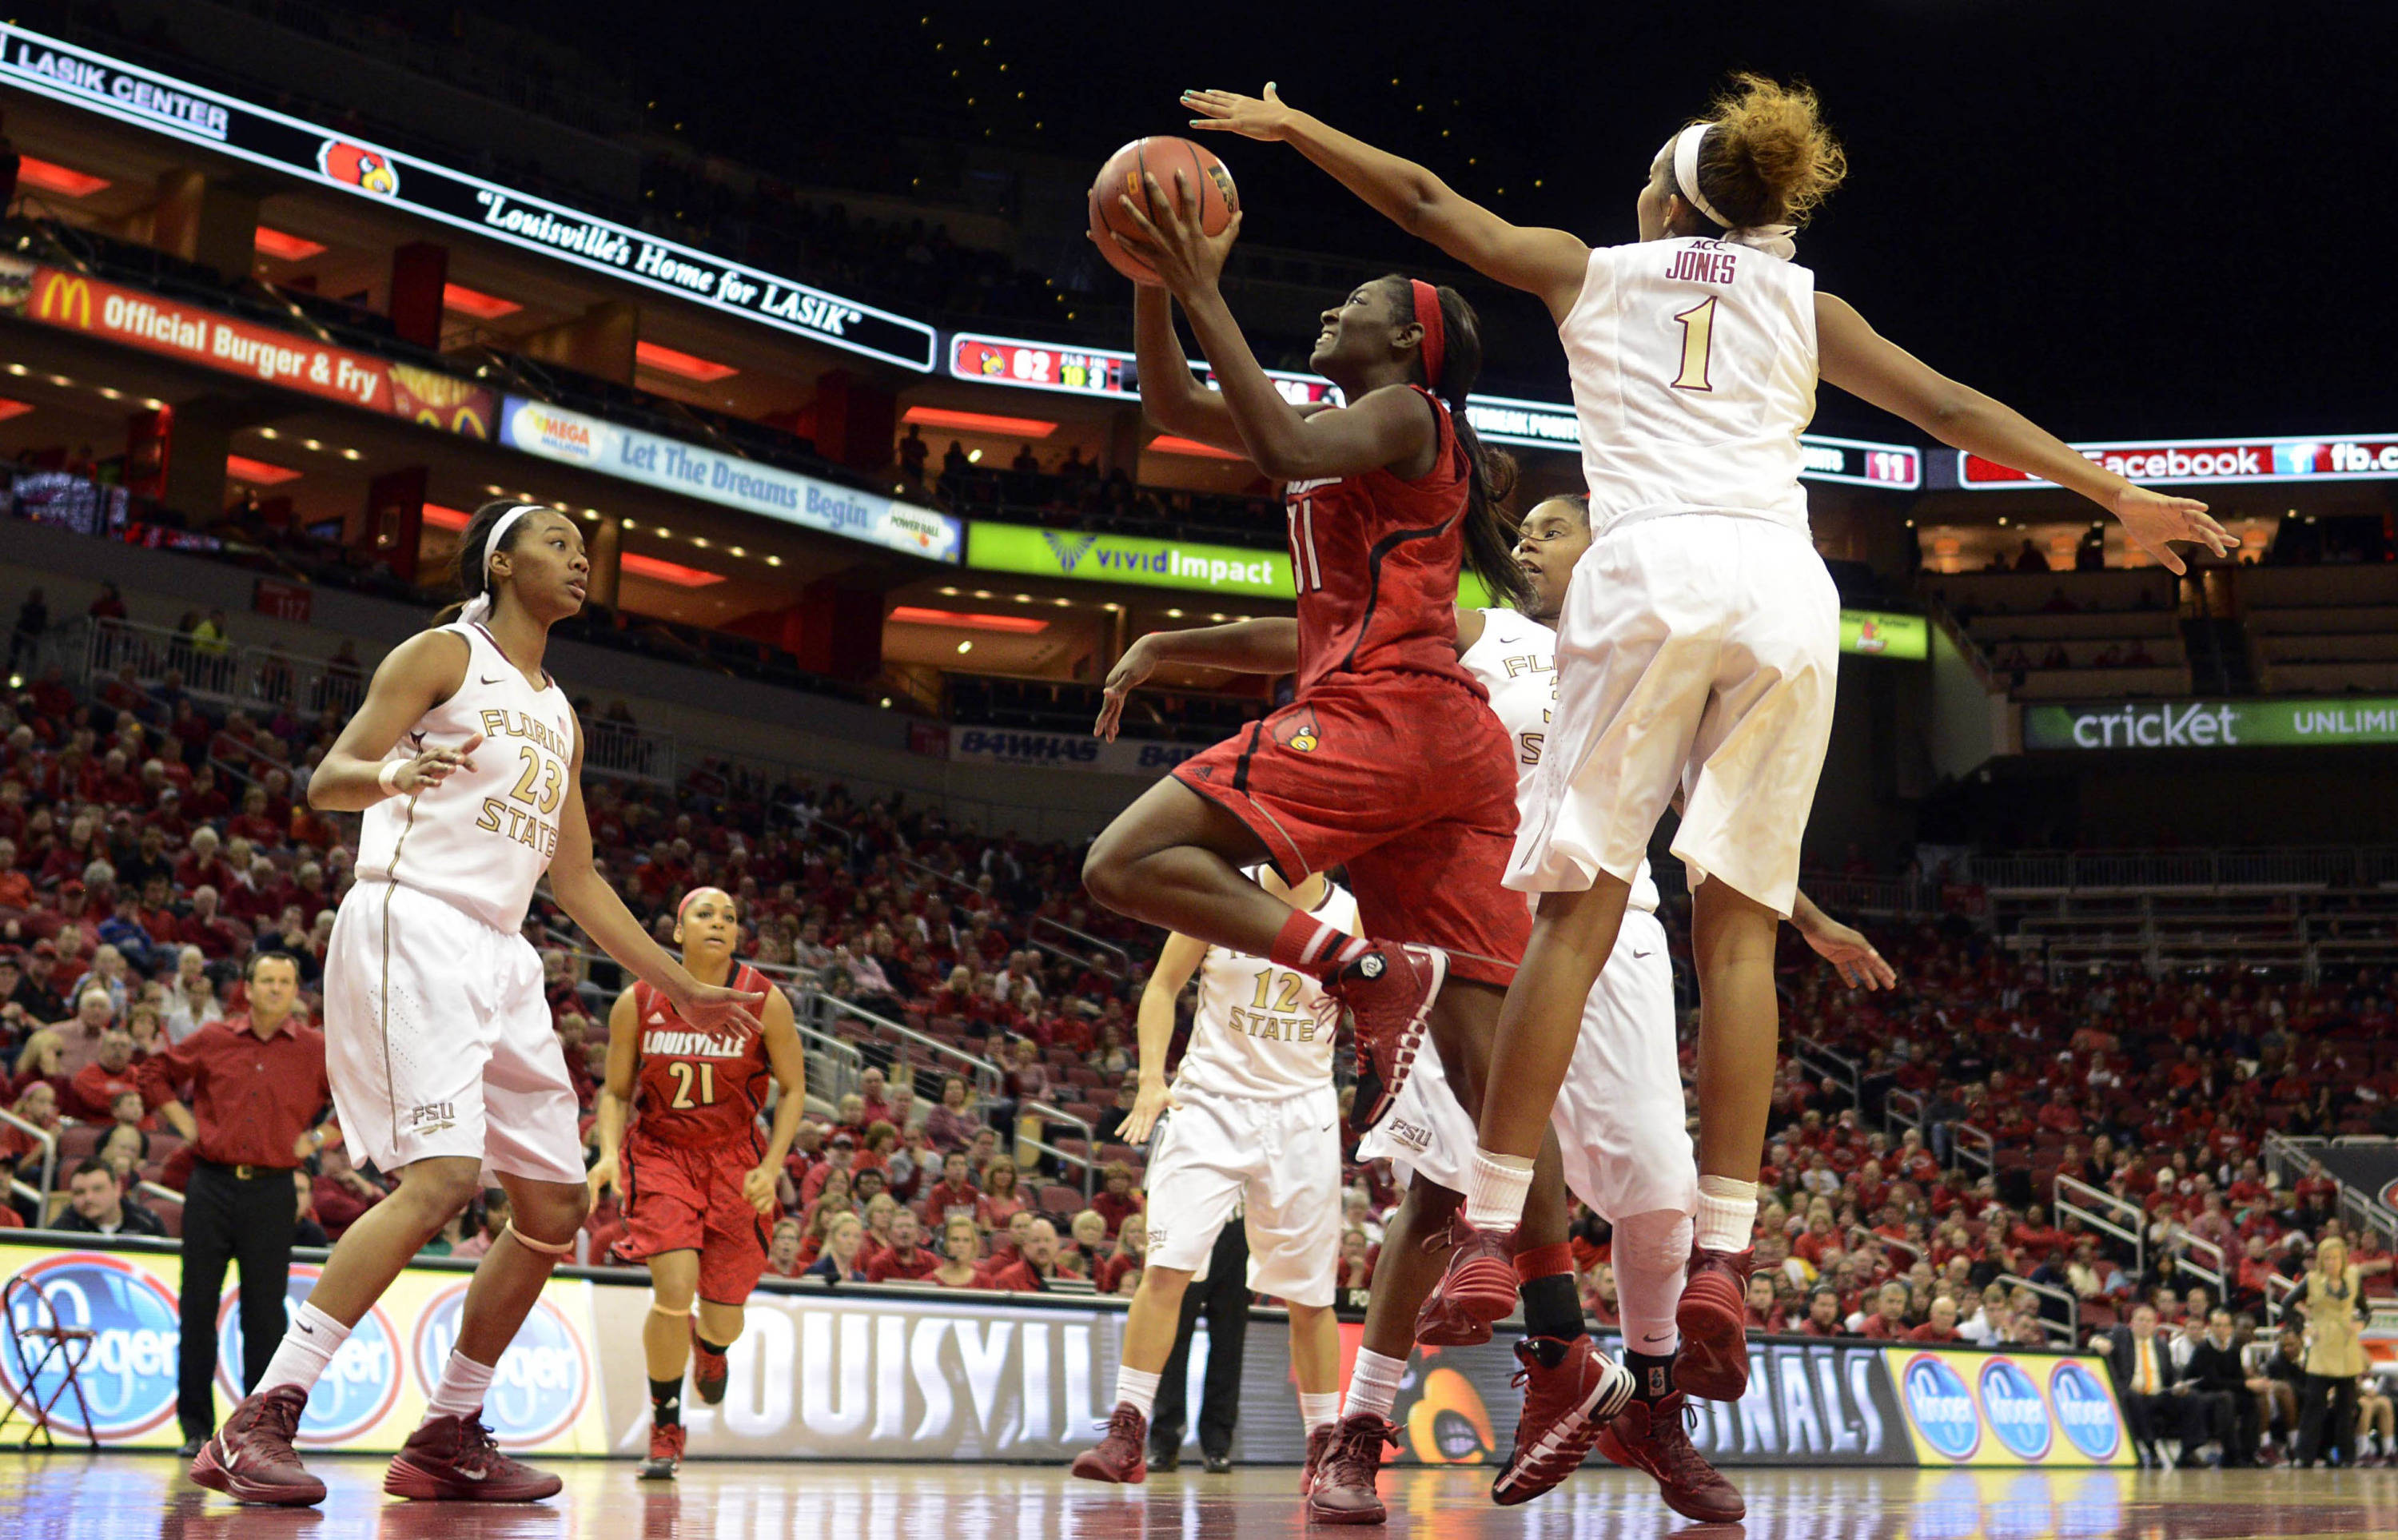 Nov 24, 2013; Louisville, KY, USA; Louisville Cardinals forward Asia Taylor (31) shoots against Florida State Seminoles guard Morgan Jones (1) during overtime during the second half at KFC YUM! Center. Louisville defeated Florida State 69-59.  Mandatory Credit: Jamie Rhodes-USA TODAY Sports